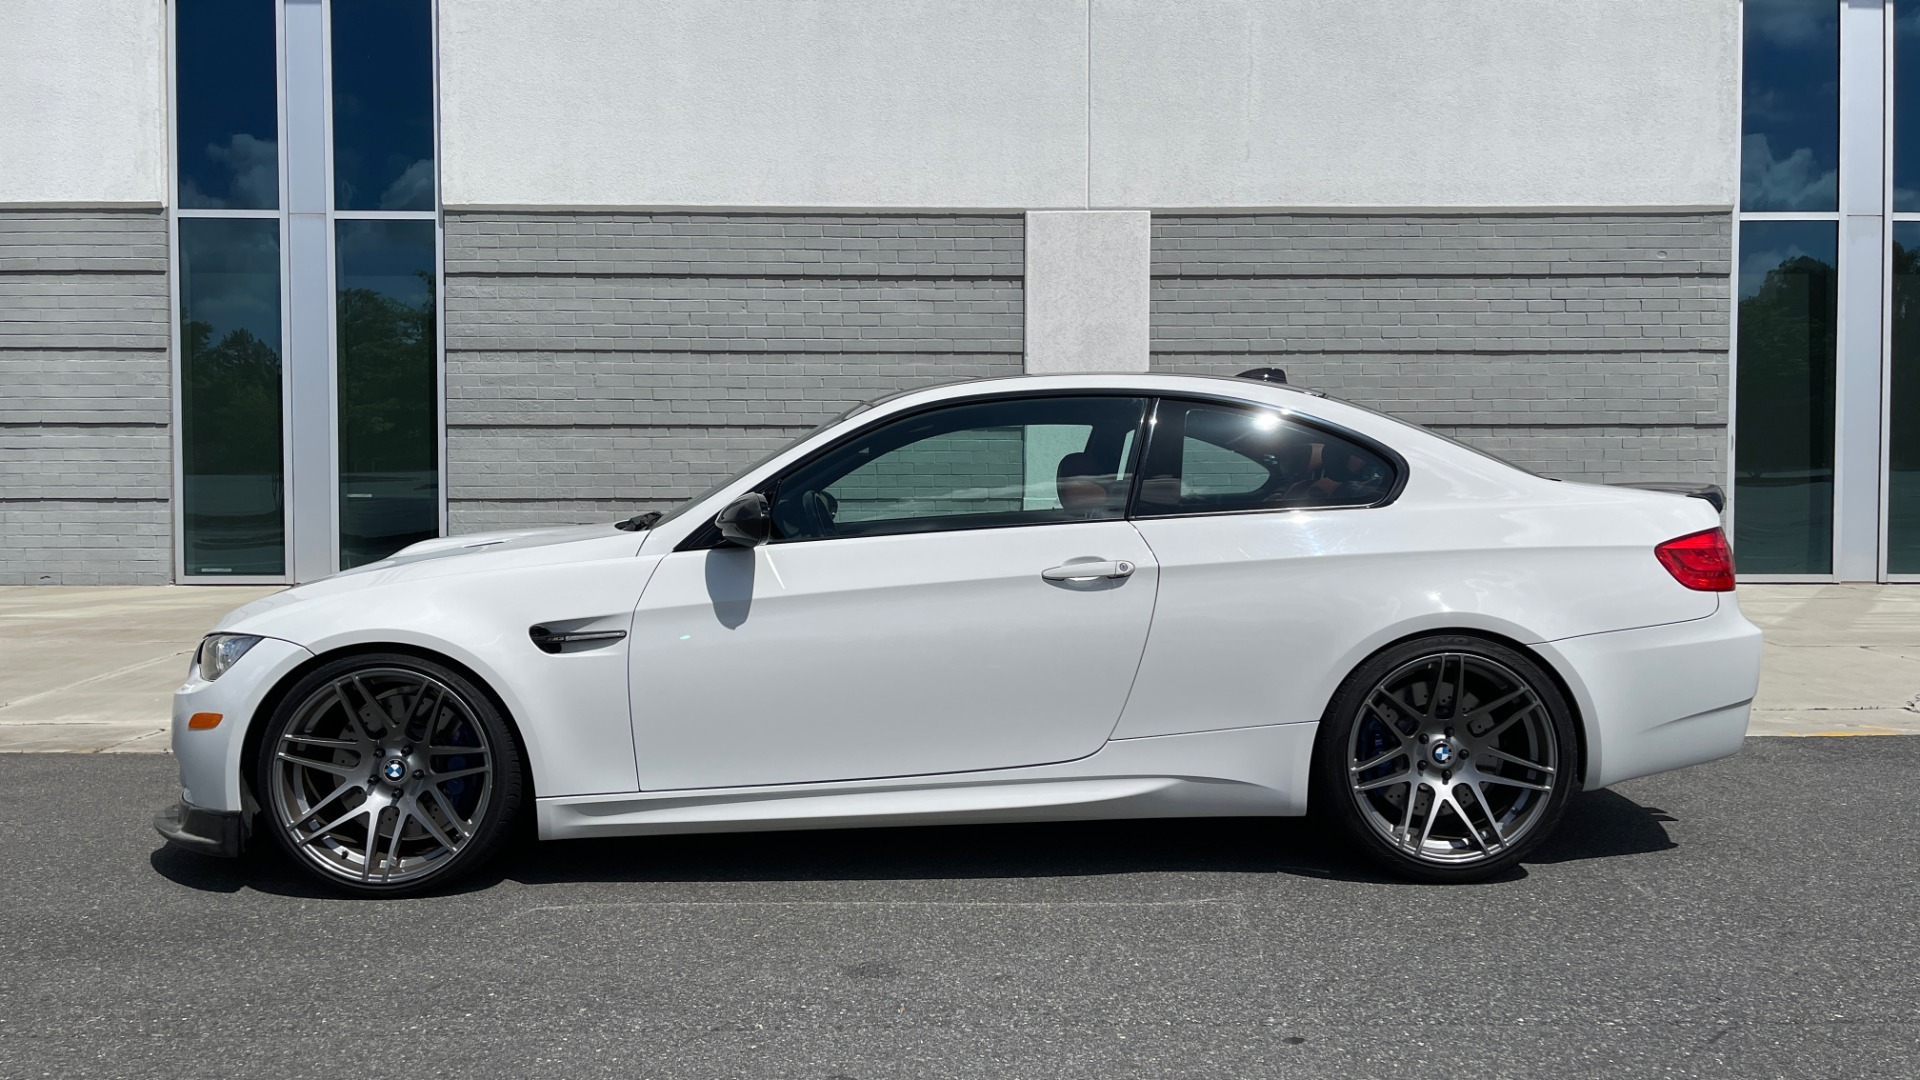 Used 2011 BMW M3 PREMIUM COUPE / CLD WTHR / TECH / SMARTPHONEINT / PARK ASST for sale Sold at Formula Imports in Charlotte NC 28227 4